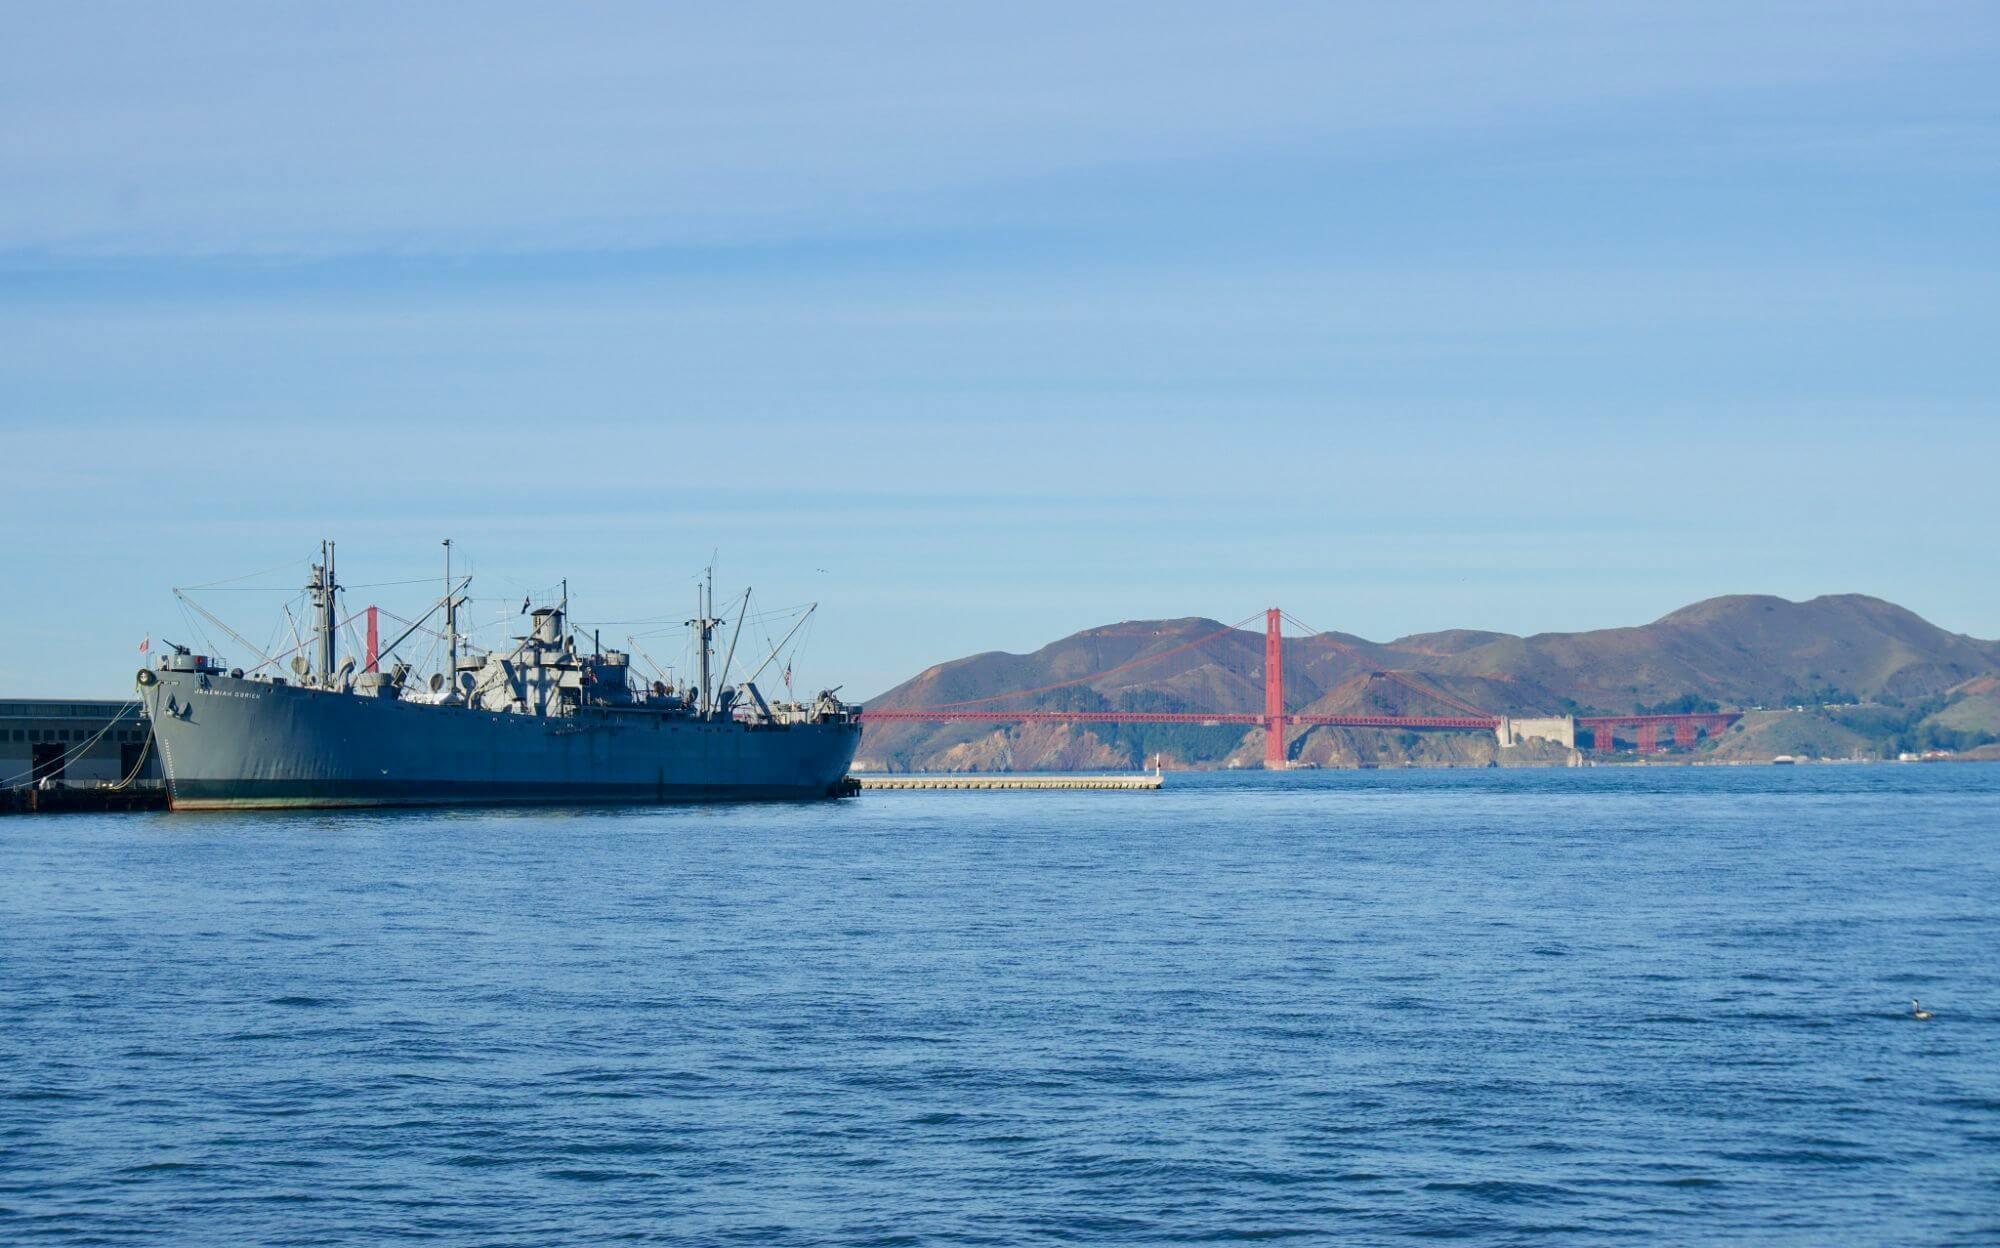 A naval boat in San Francisco Bay with Golden Gate Bridge in the distance